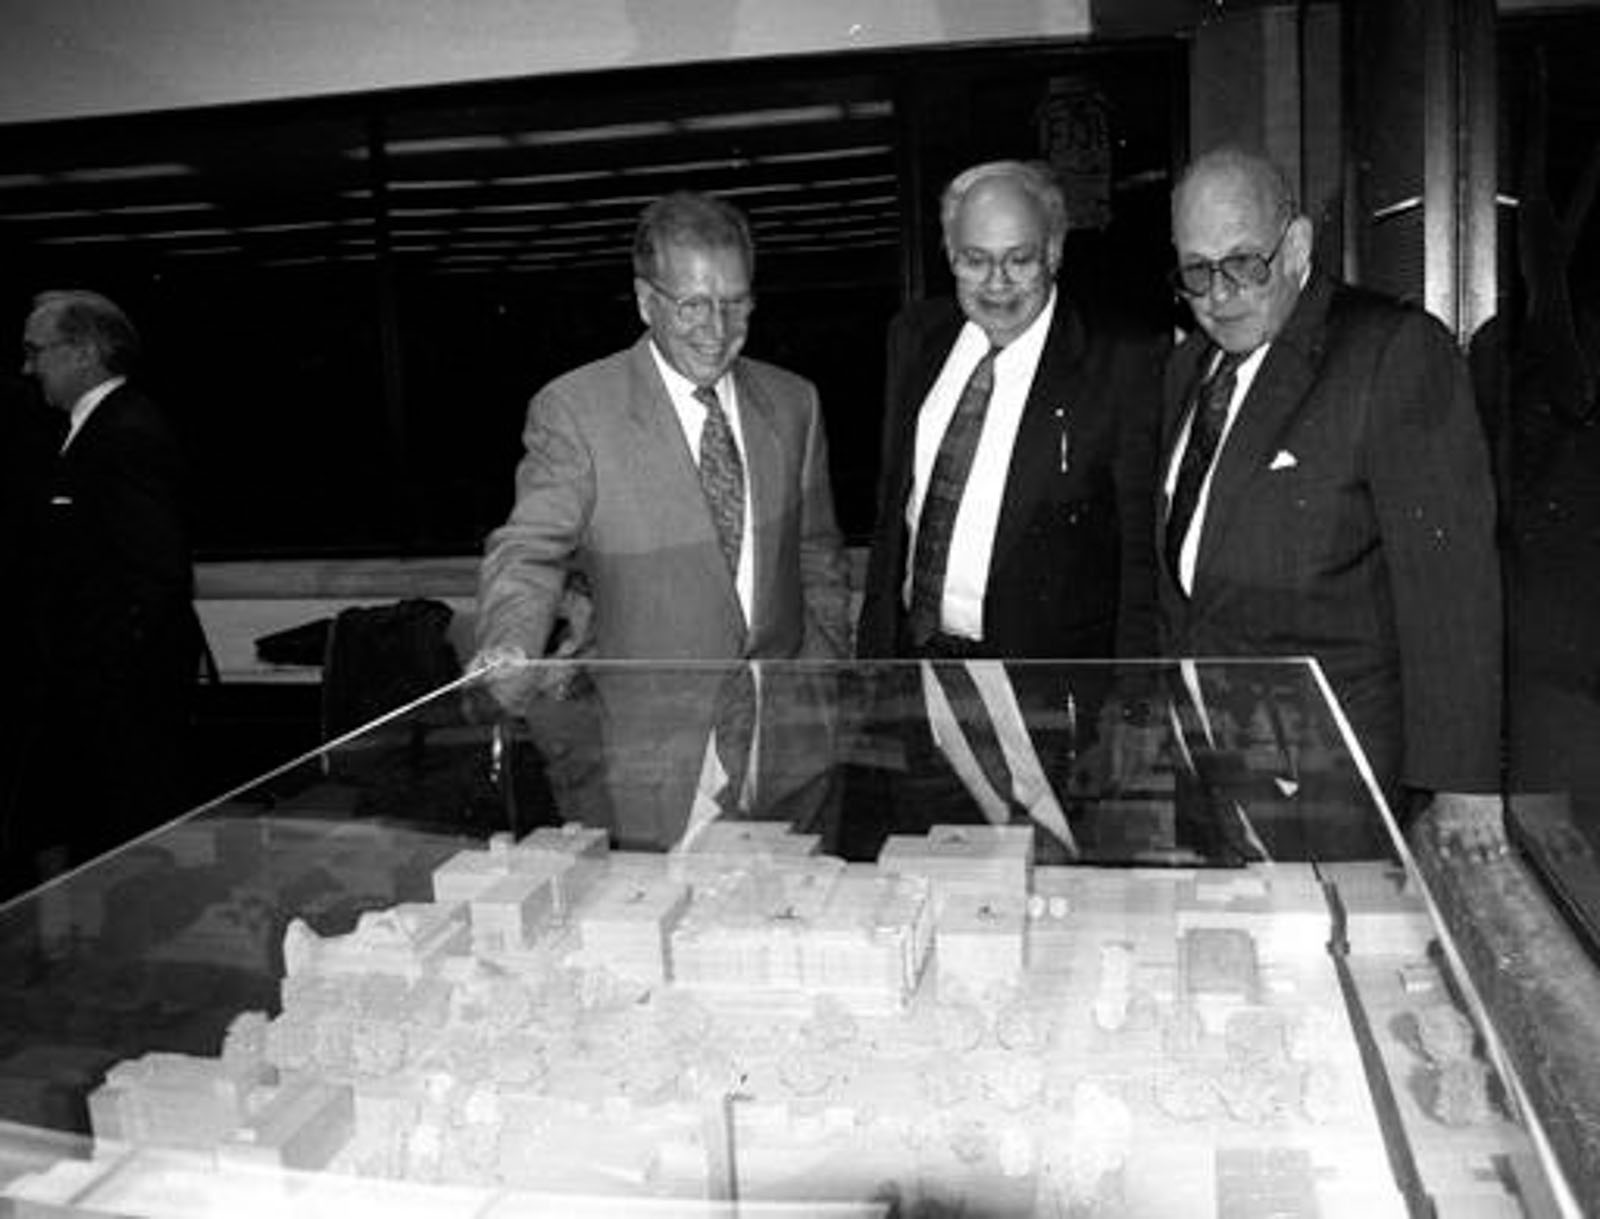 UBC President David Strangway, centre, and Walter Koerner, right, look at a model of Koerner Library.